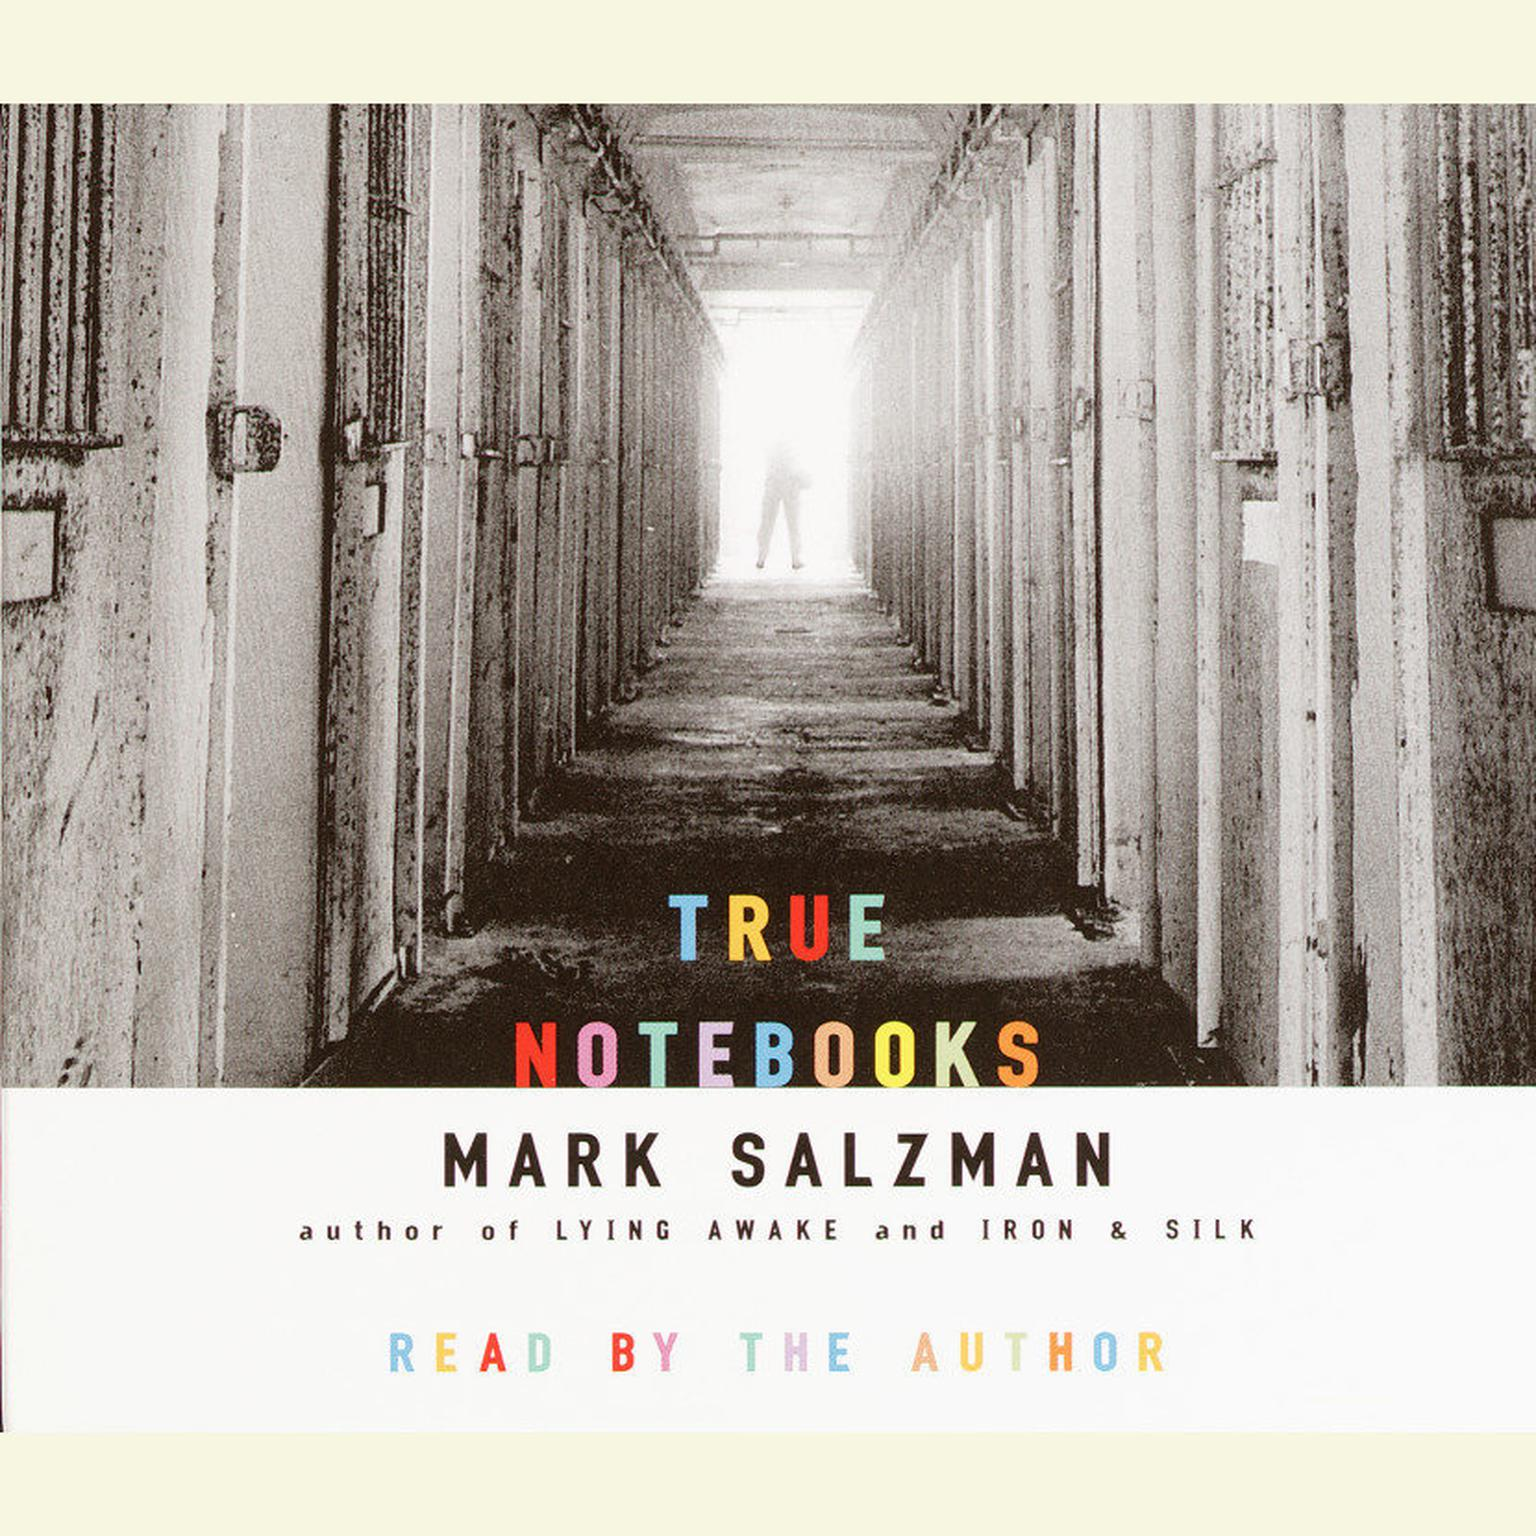 essays on true notebooks by mark salzman